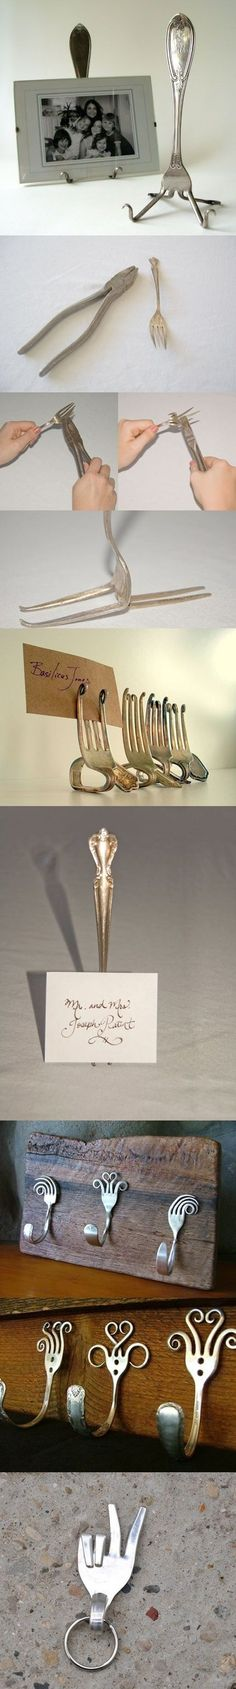 DIY Fork Art Scour up some old forks and use a pair of pliers and elbow grease to form them into whatever shape you like! Here's some inspiration: http://doitandhow.com/category/recycle-it/#